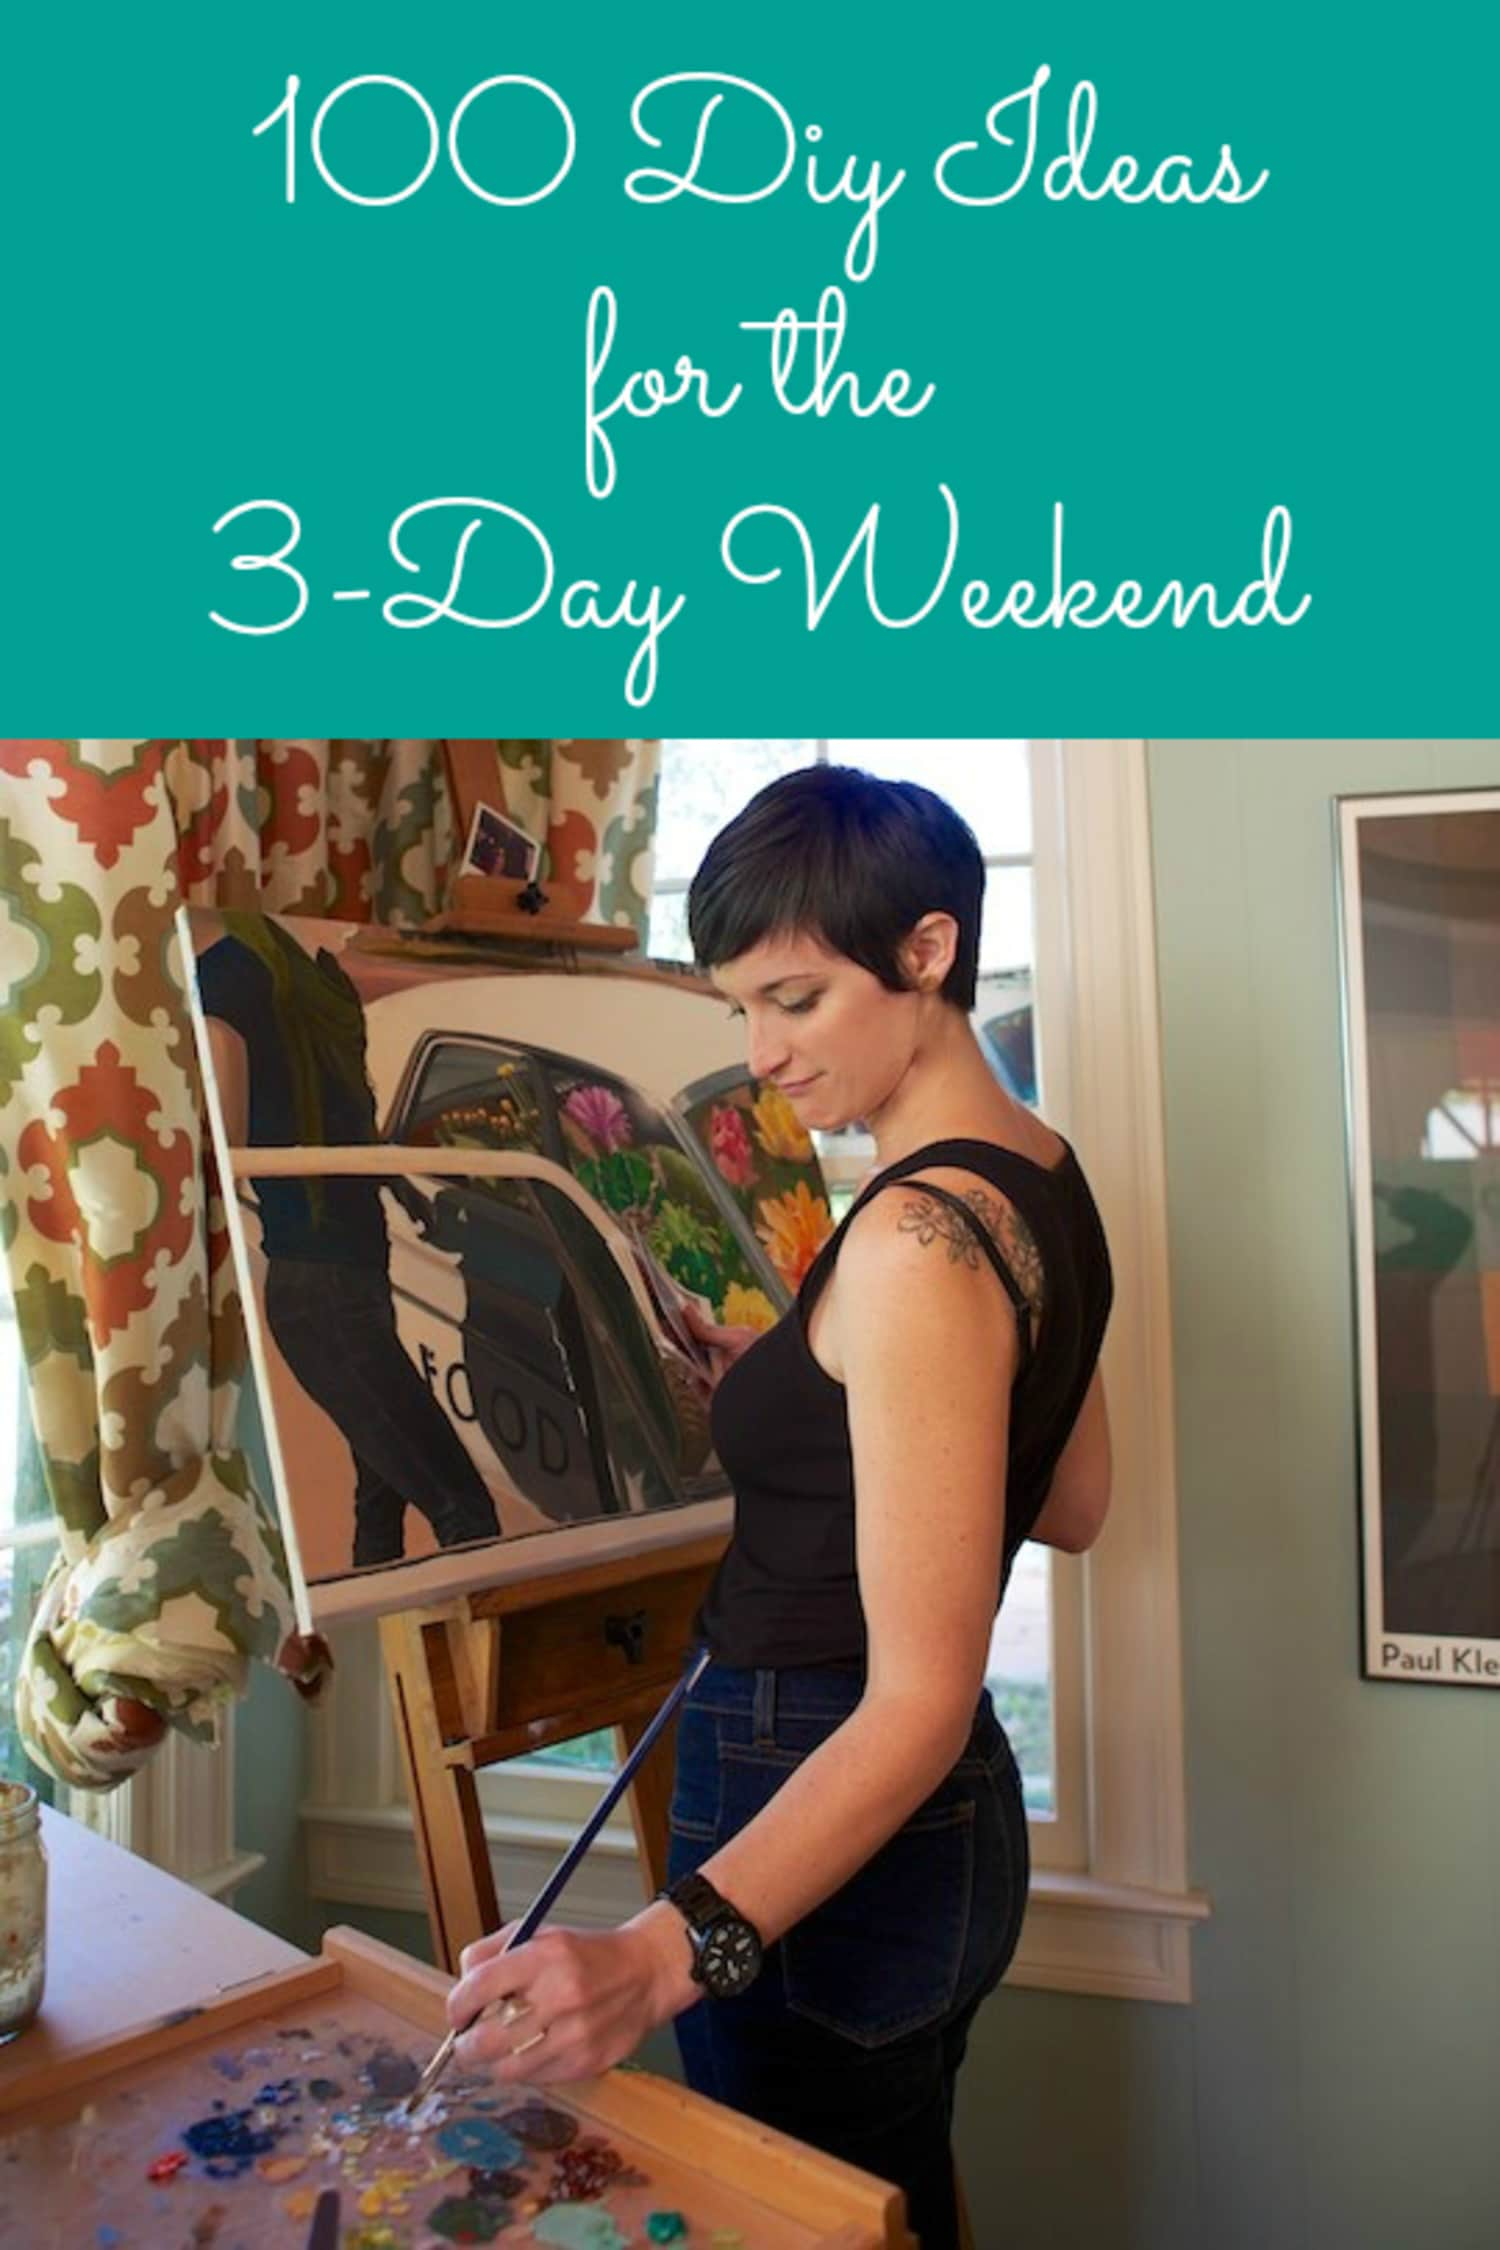 100 DIY Ideas for the 3-Day Weekend